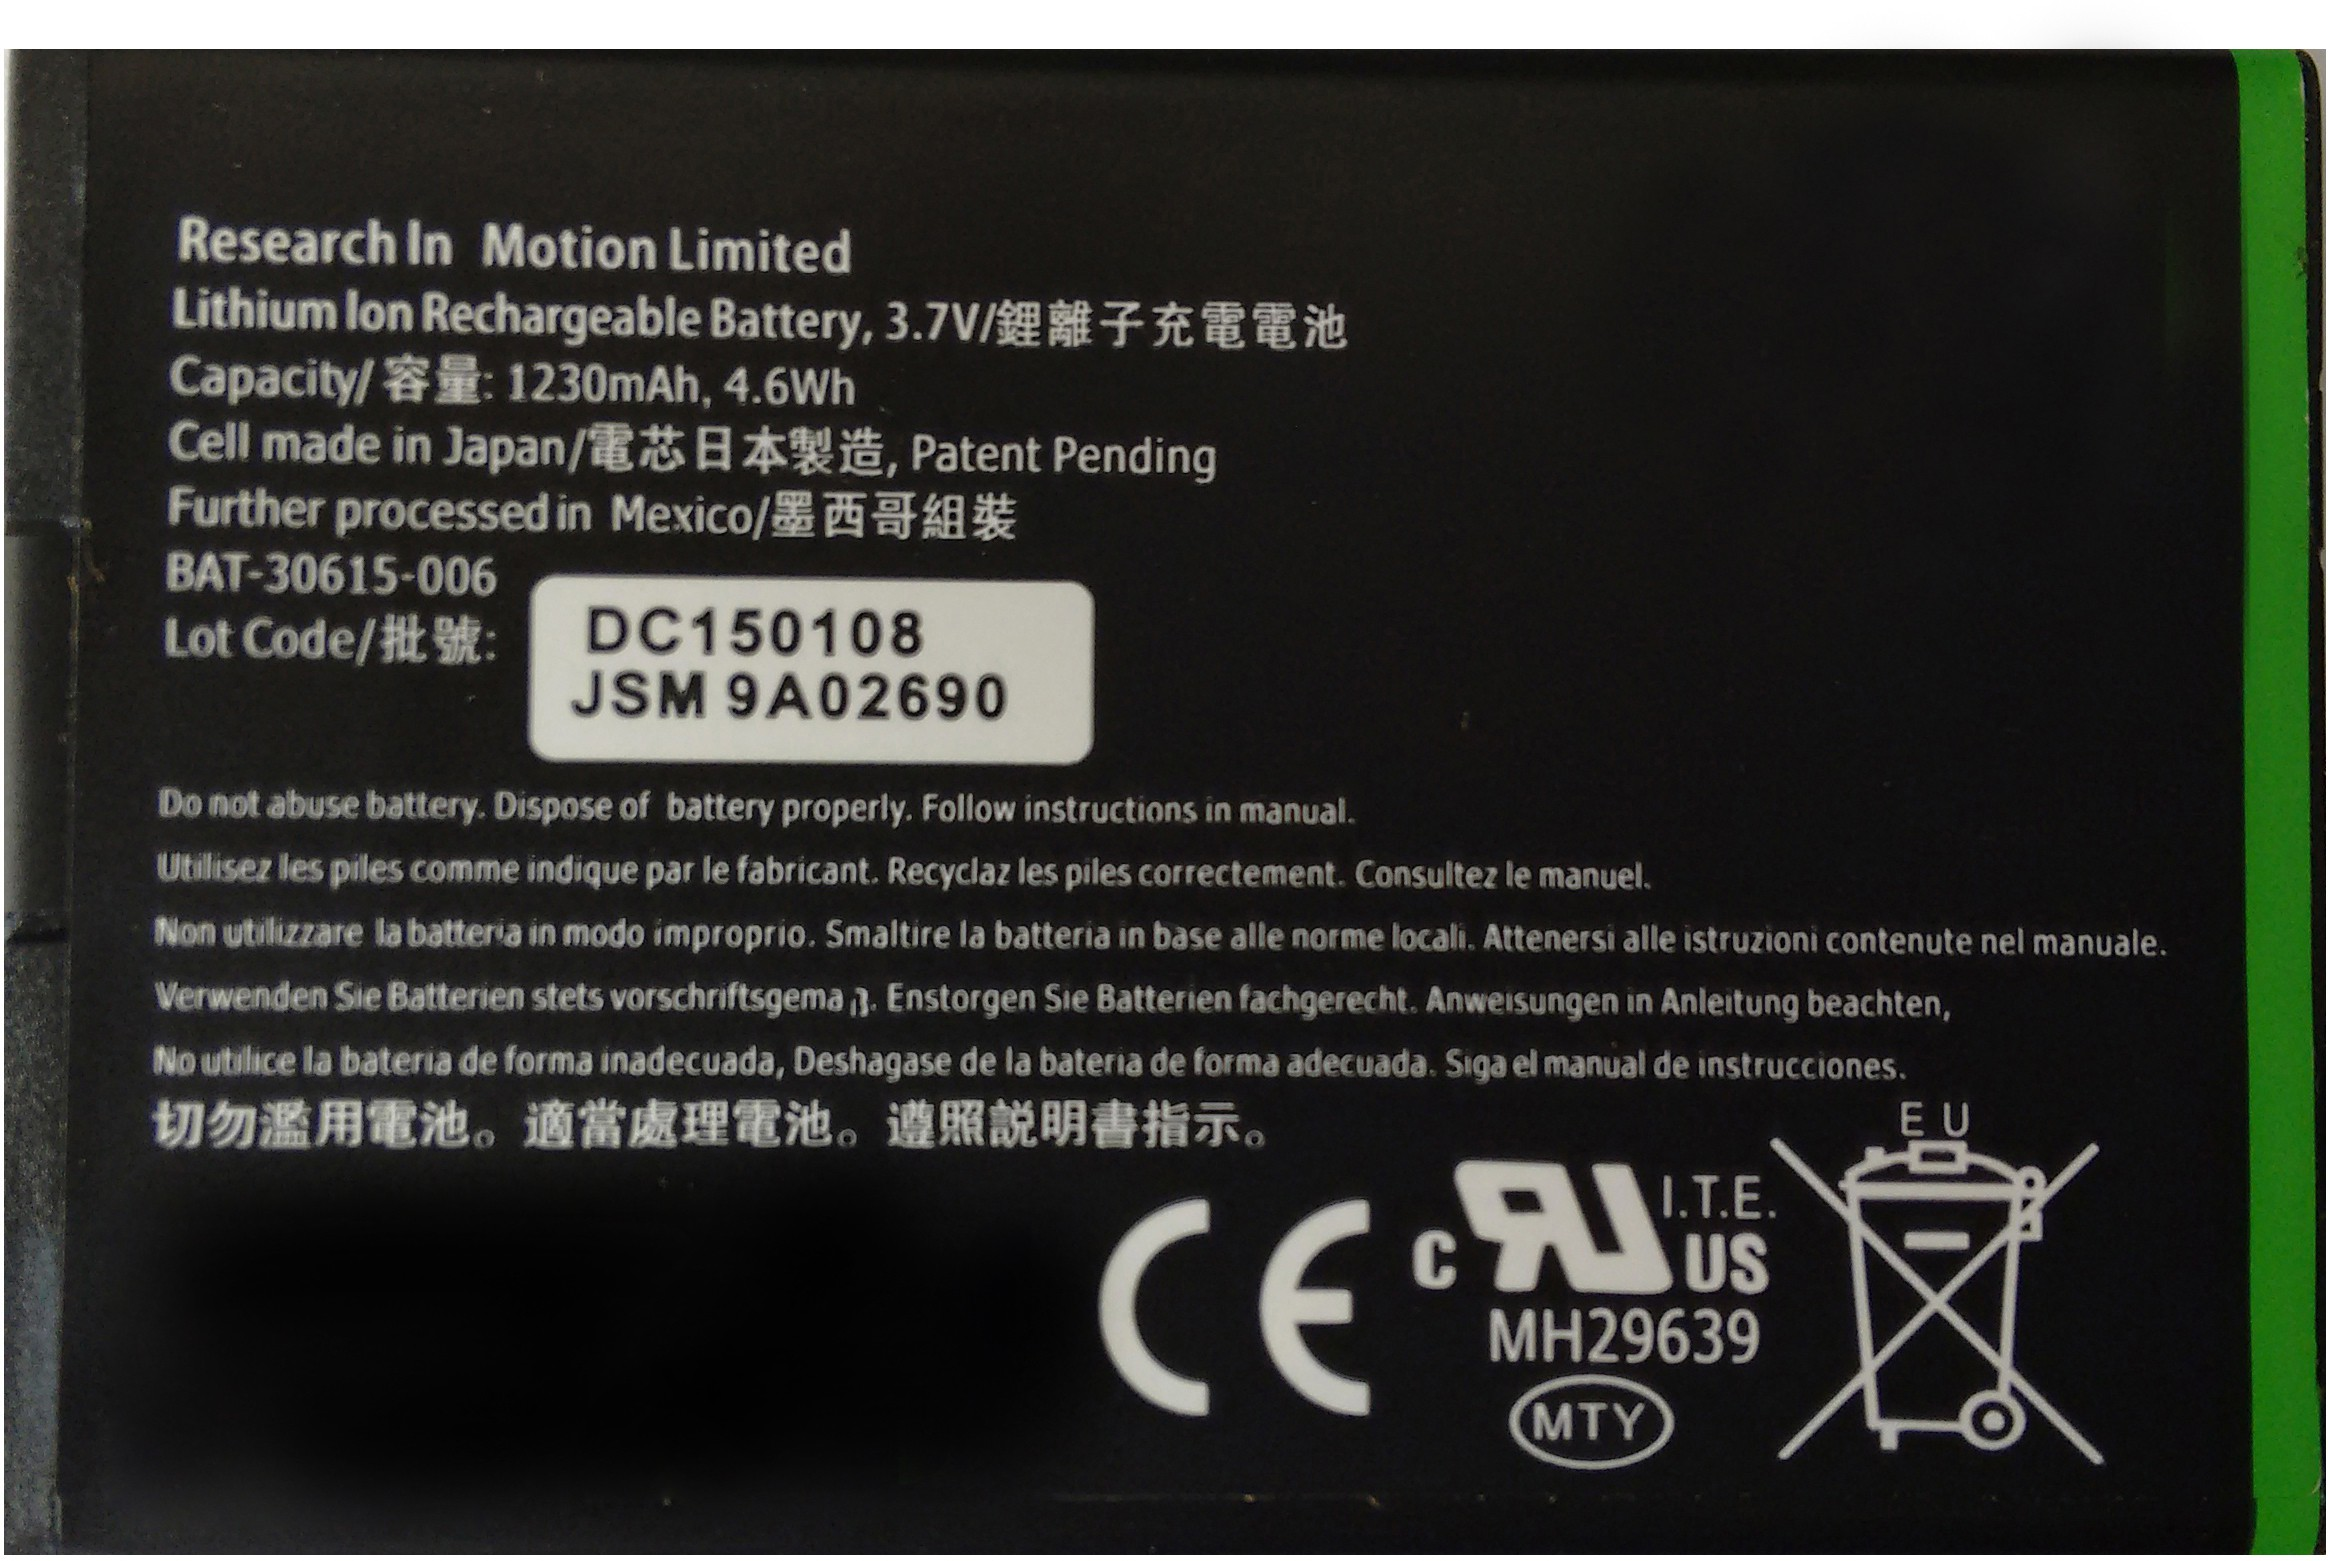 Enolex  Battery - Rock Star Quality- For TORCH 9850 JM 1(Black)